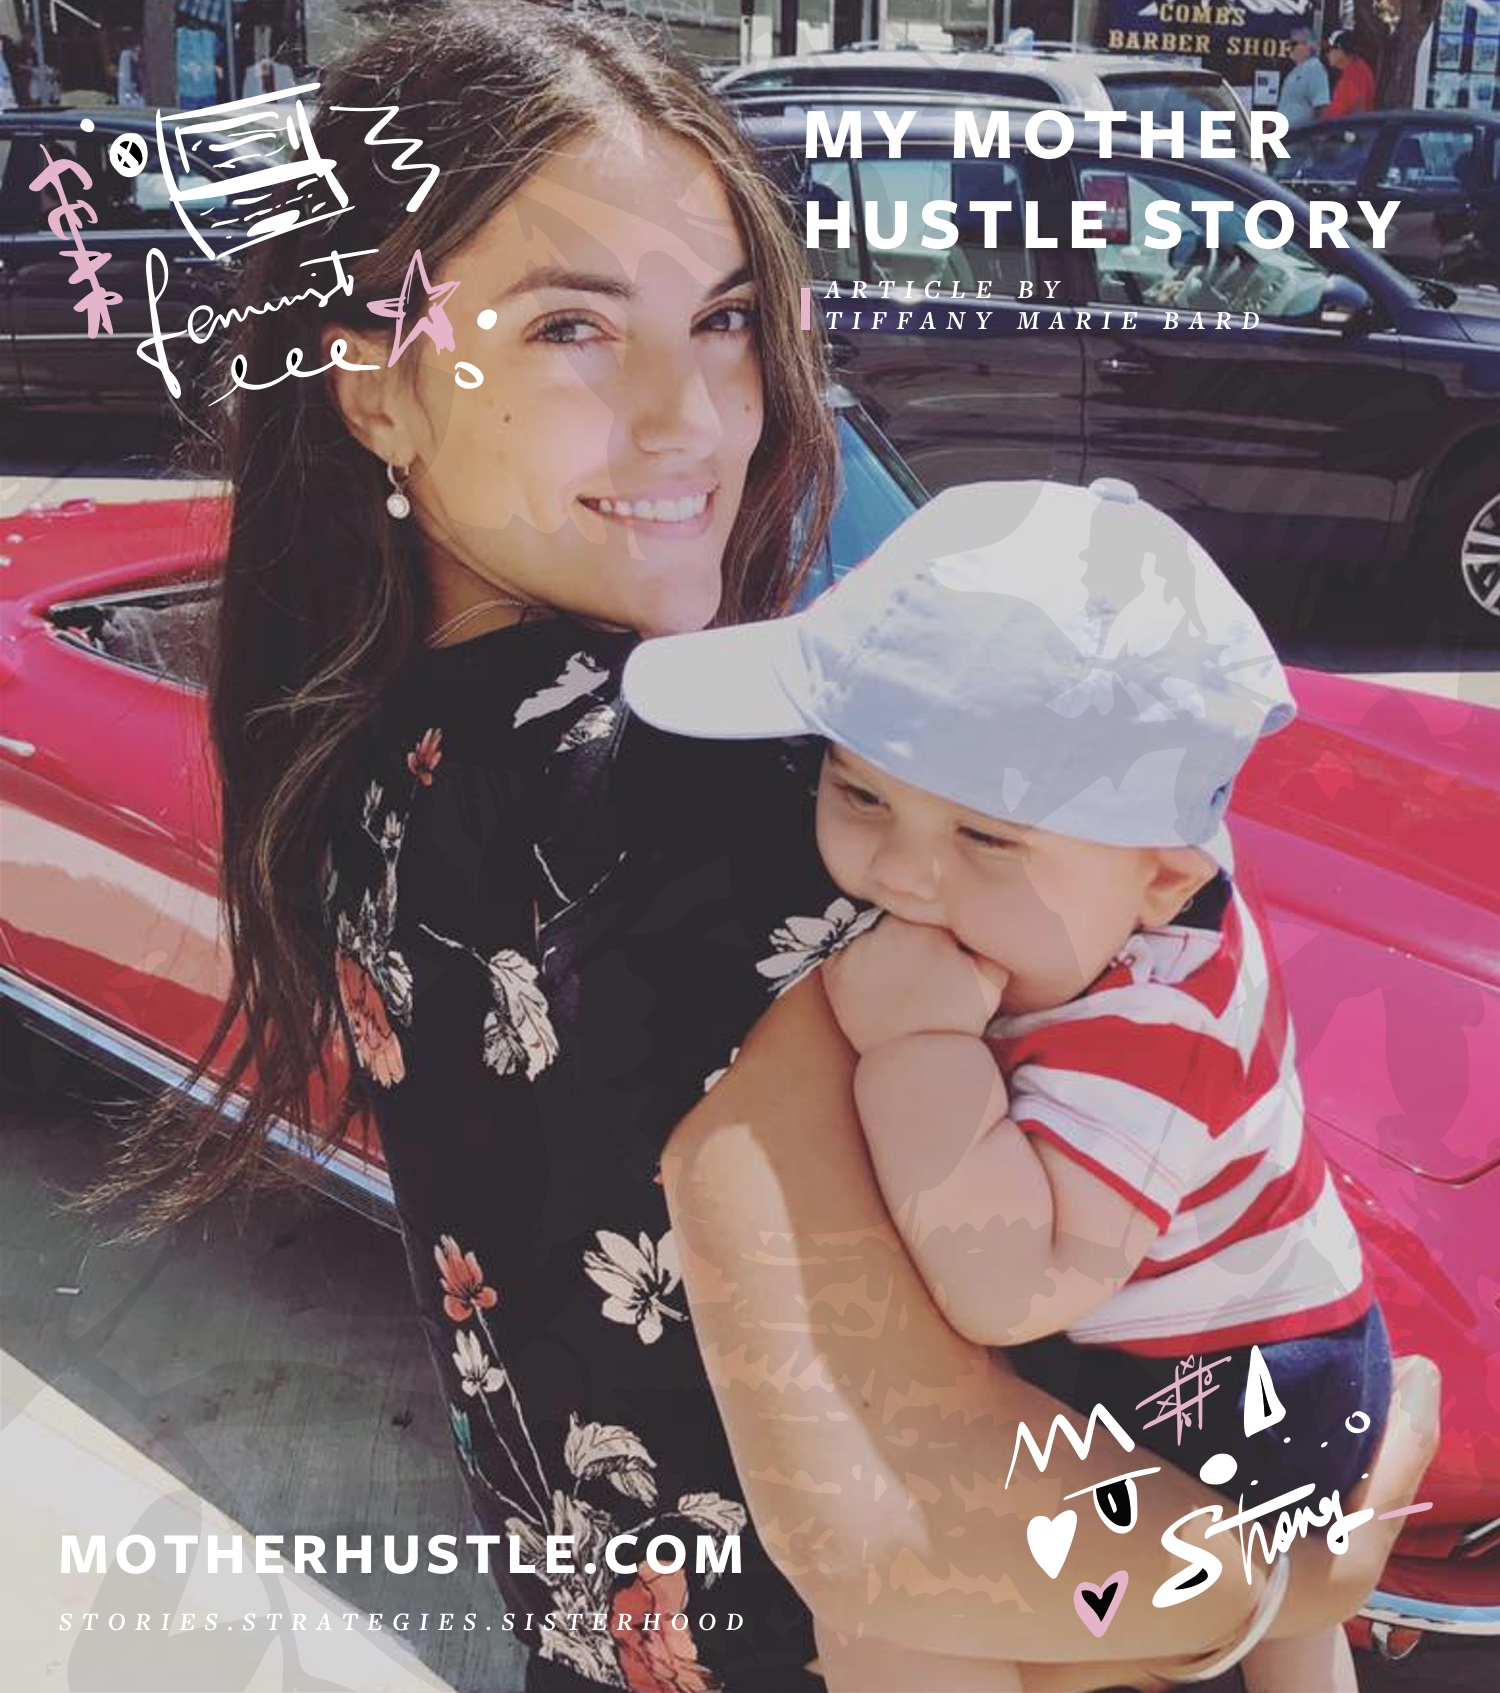 Tiffany Marie Bard's #MyMotherHustle Story